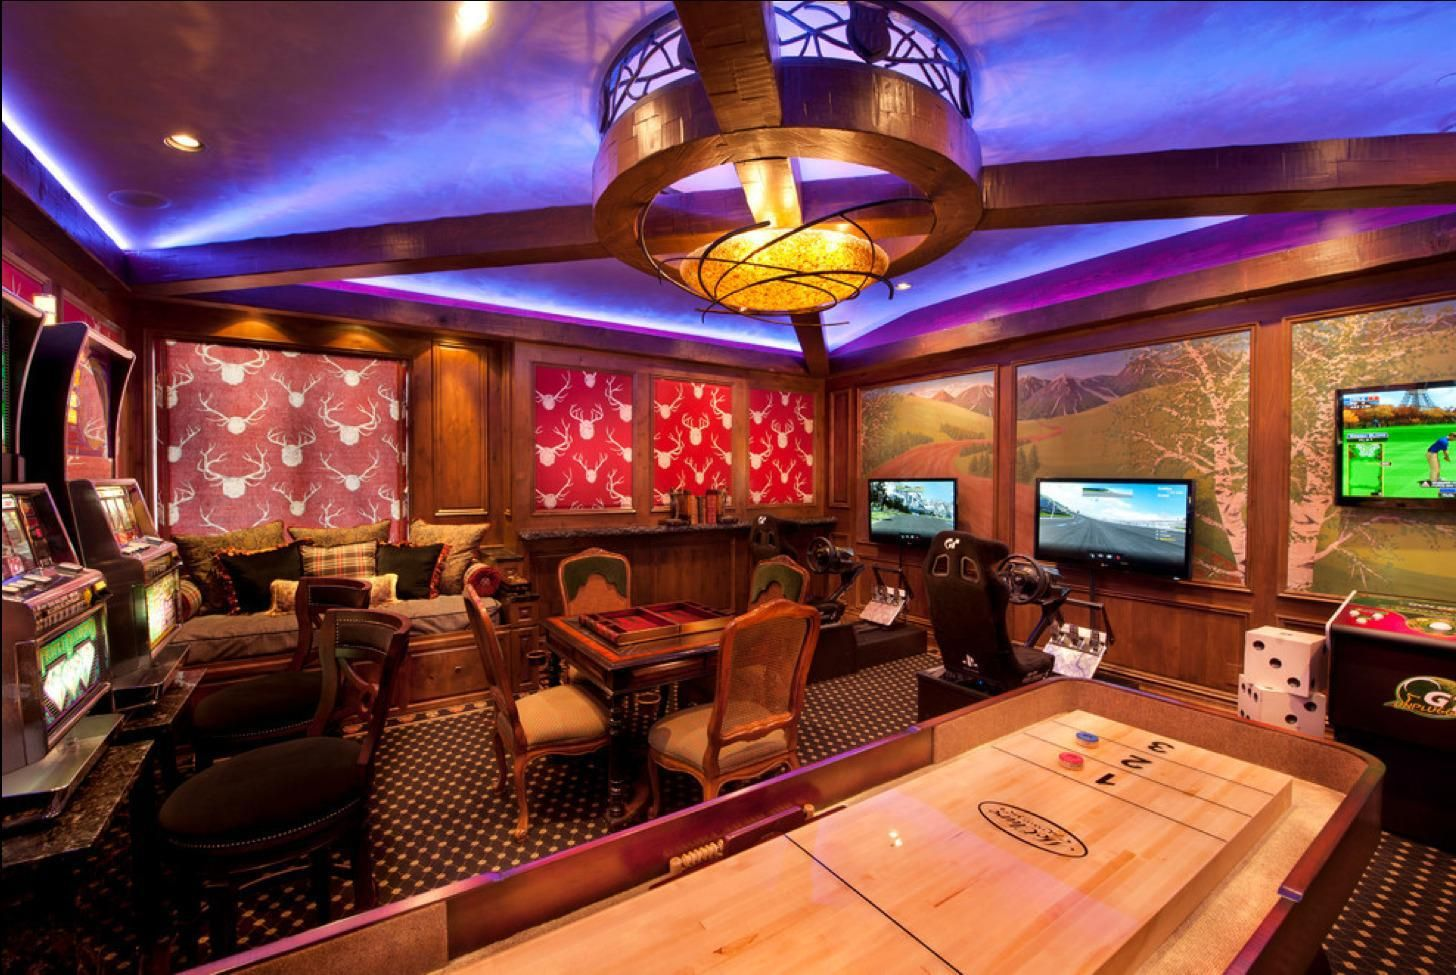 Luxury Room Decorating Games For Adults Game Room Design